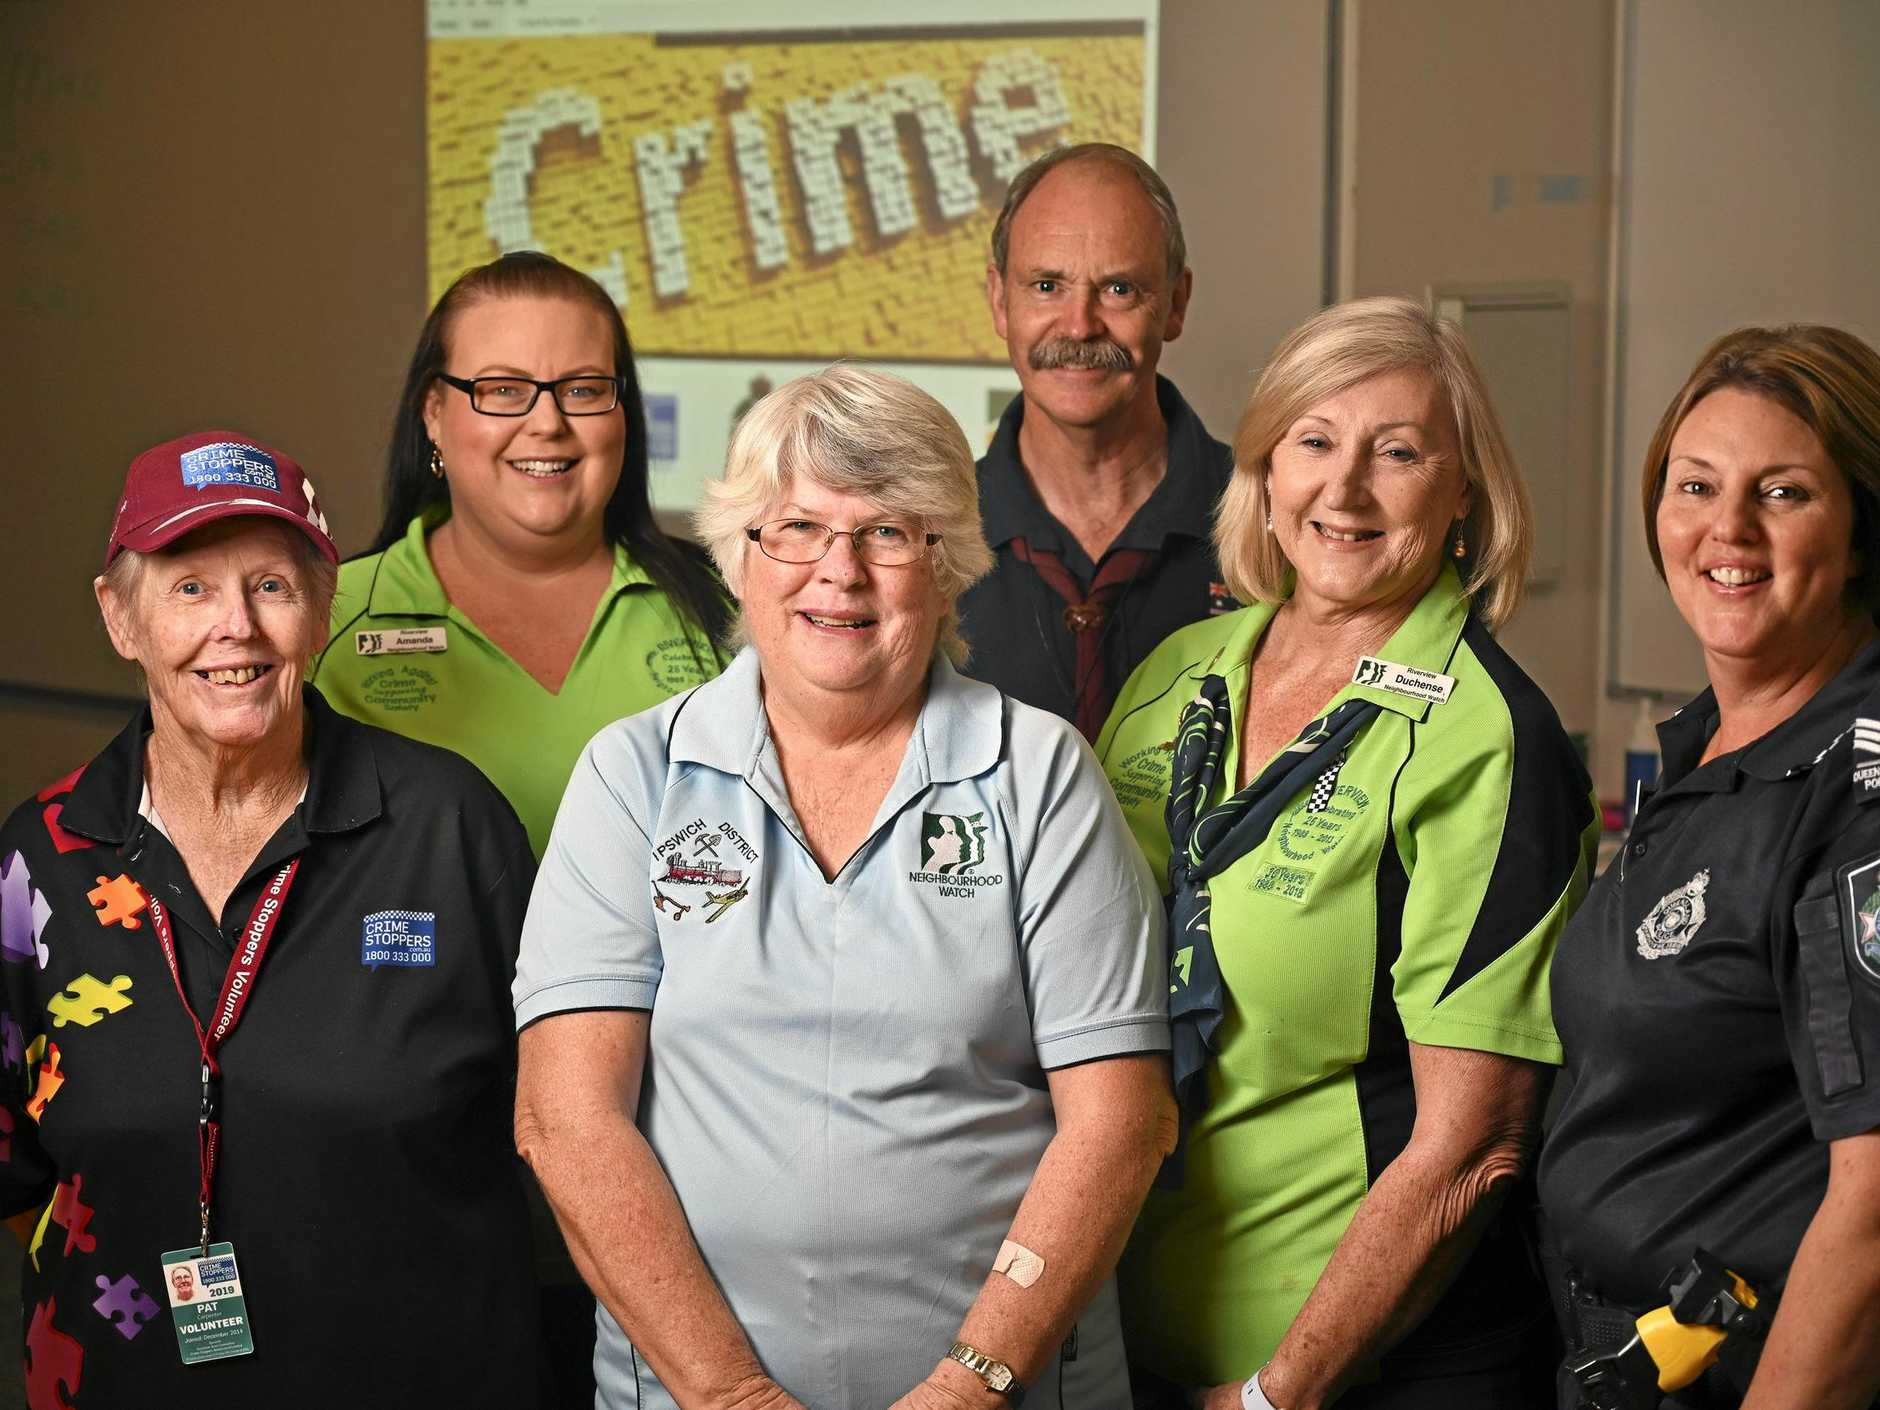 TAKING UP THE FIGHT: Pat Carpenter, Amanda Draheim, Pam Lobwein, Alex Mair, Duchense broad and Nadine Websterahead of the Crime Prevention Awards.